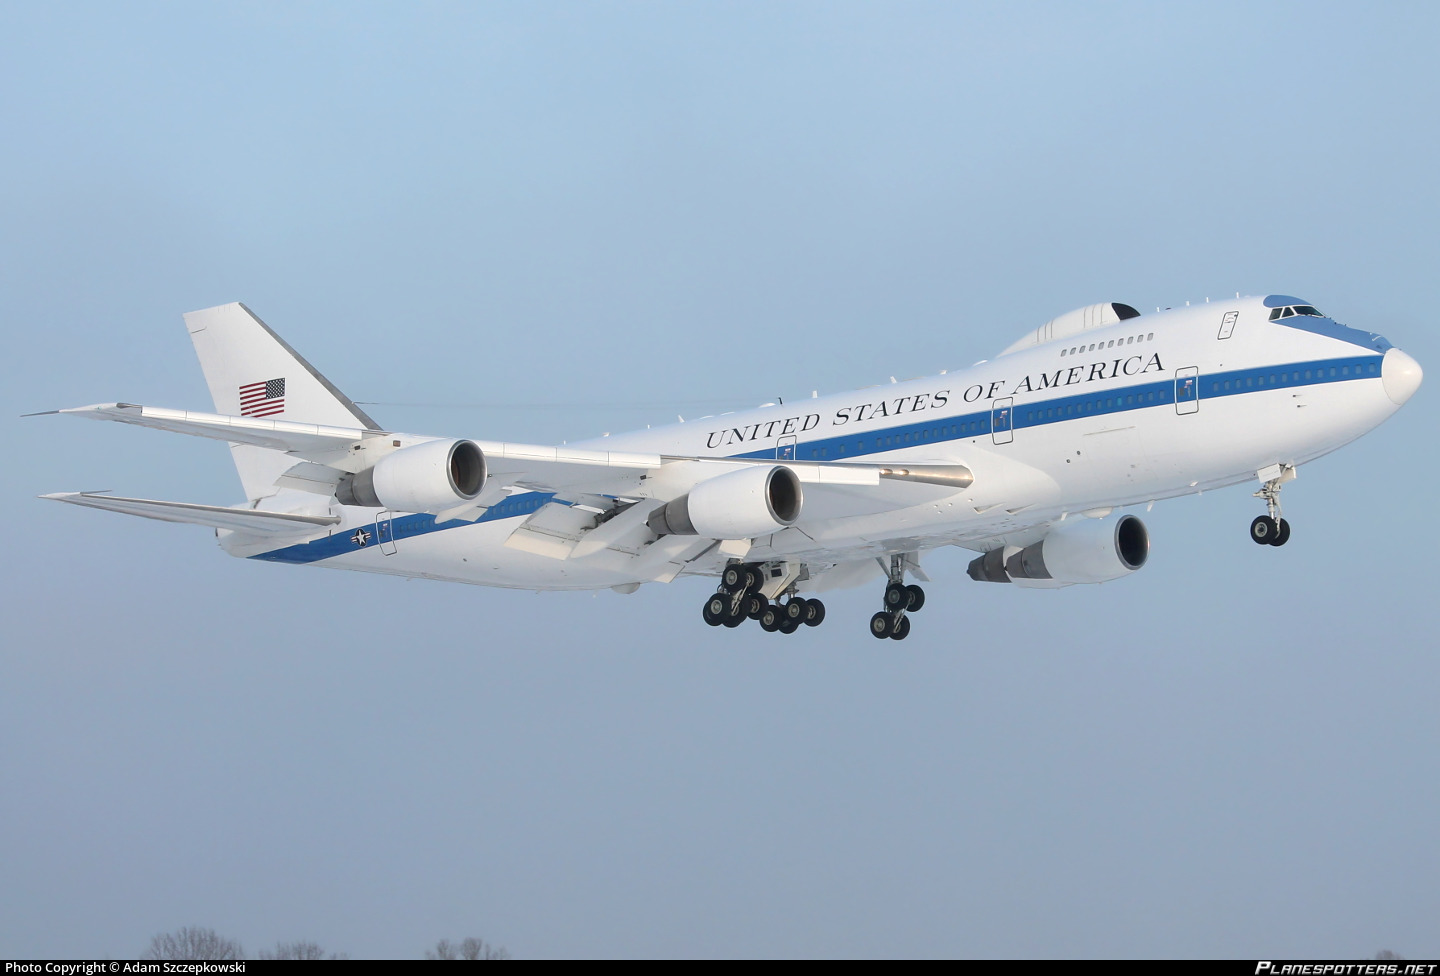 74 0787 usaf united states air force boeing e 4b photo by adam